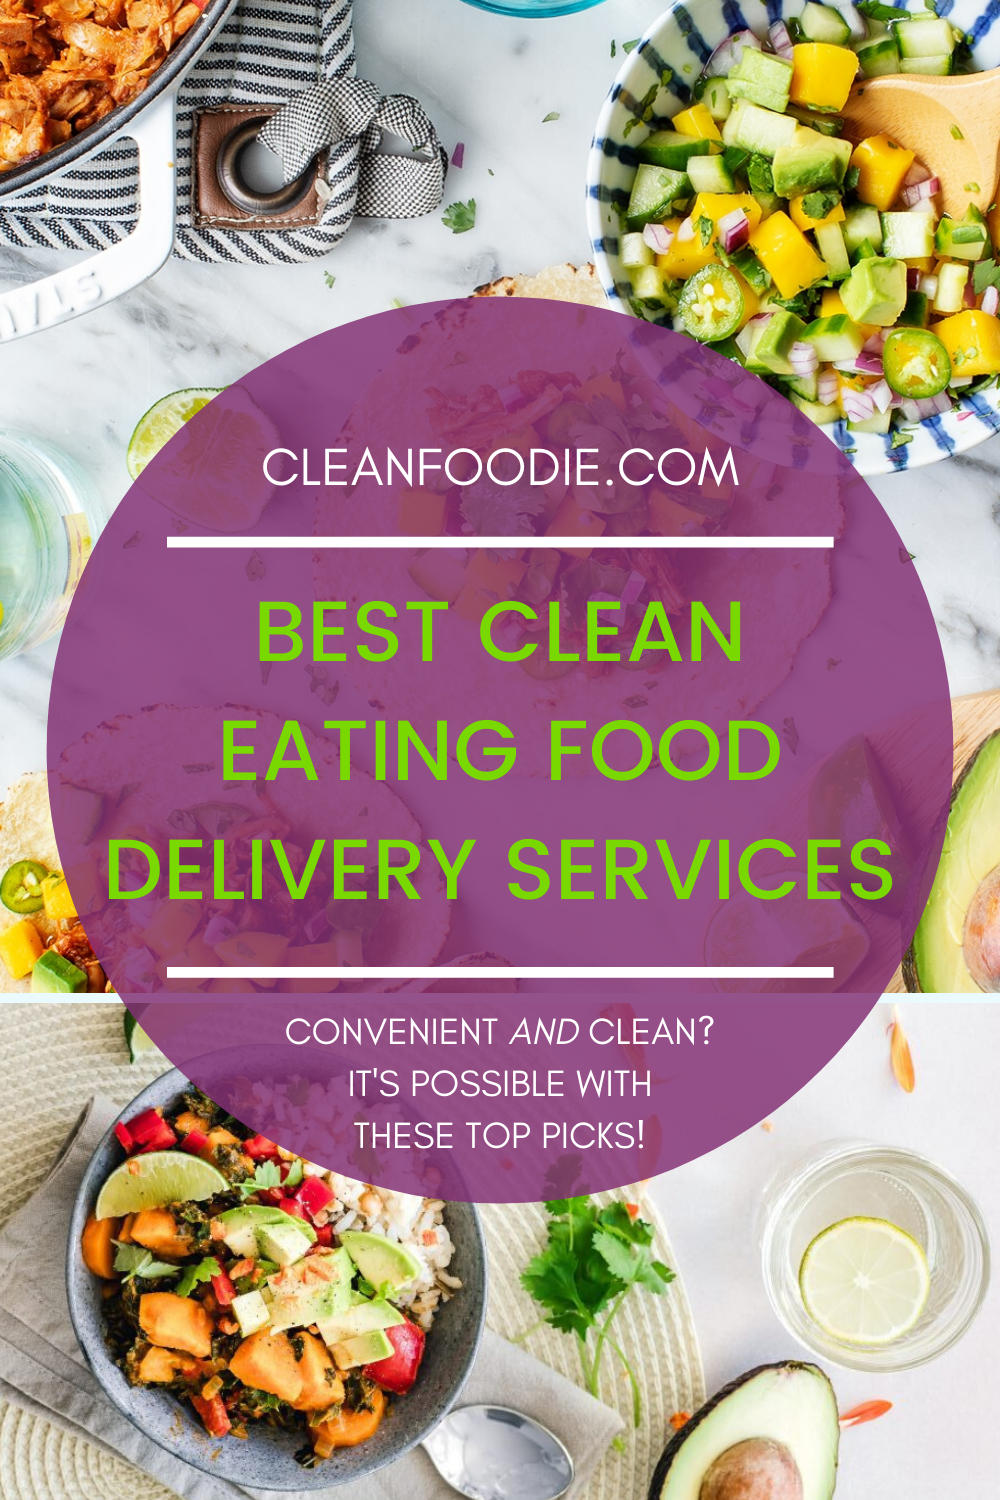 Best Clean Eating Food Delivery